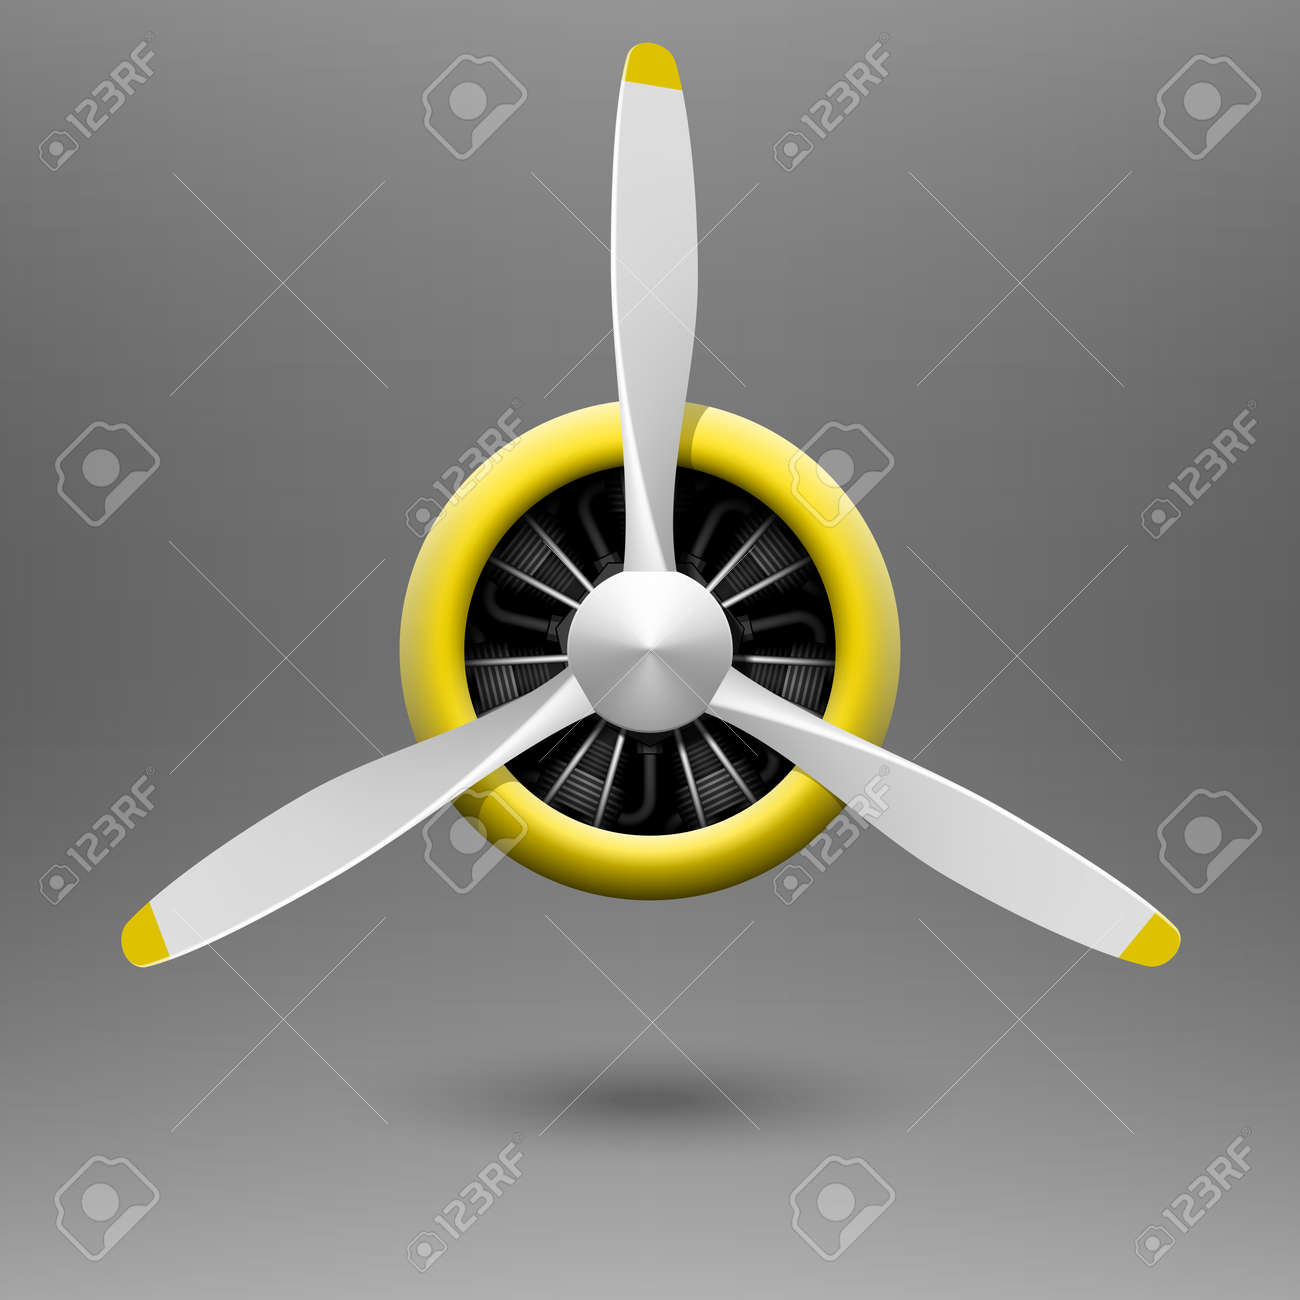 3d5e4f68f1a1 Vintage Airplane Propeller With Radial Engine Royalty Free Cliparts ...